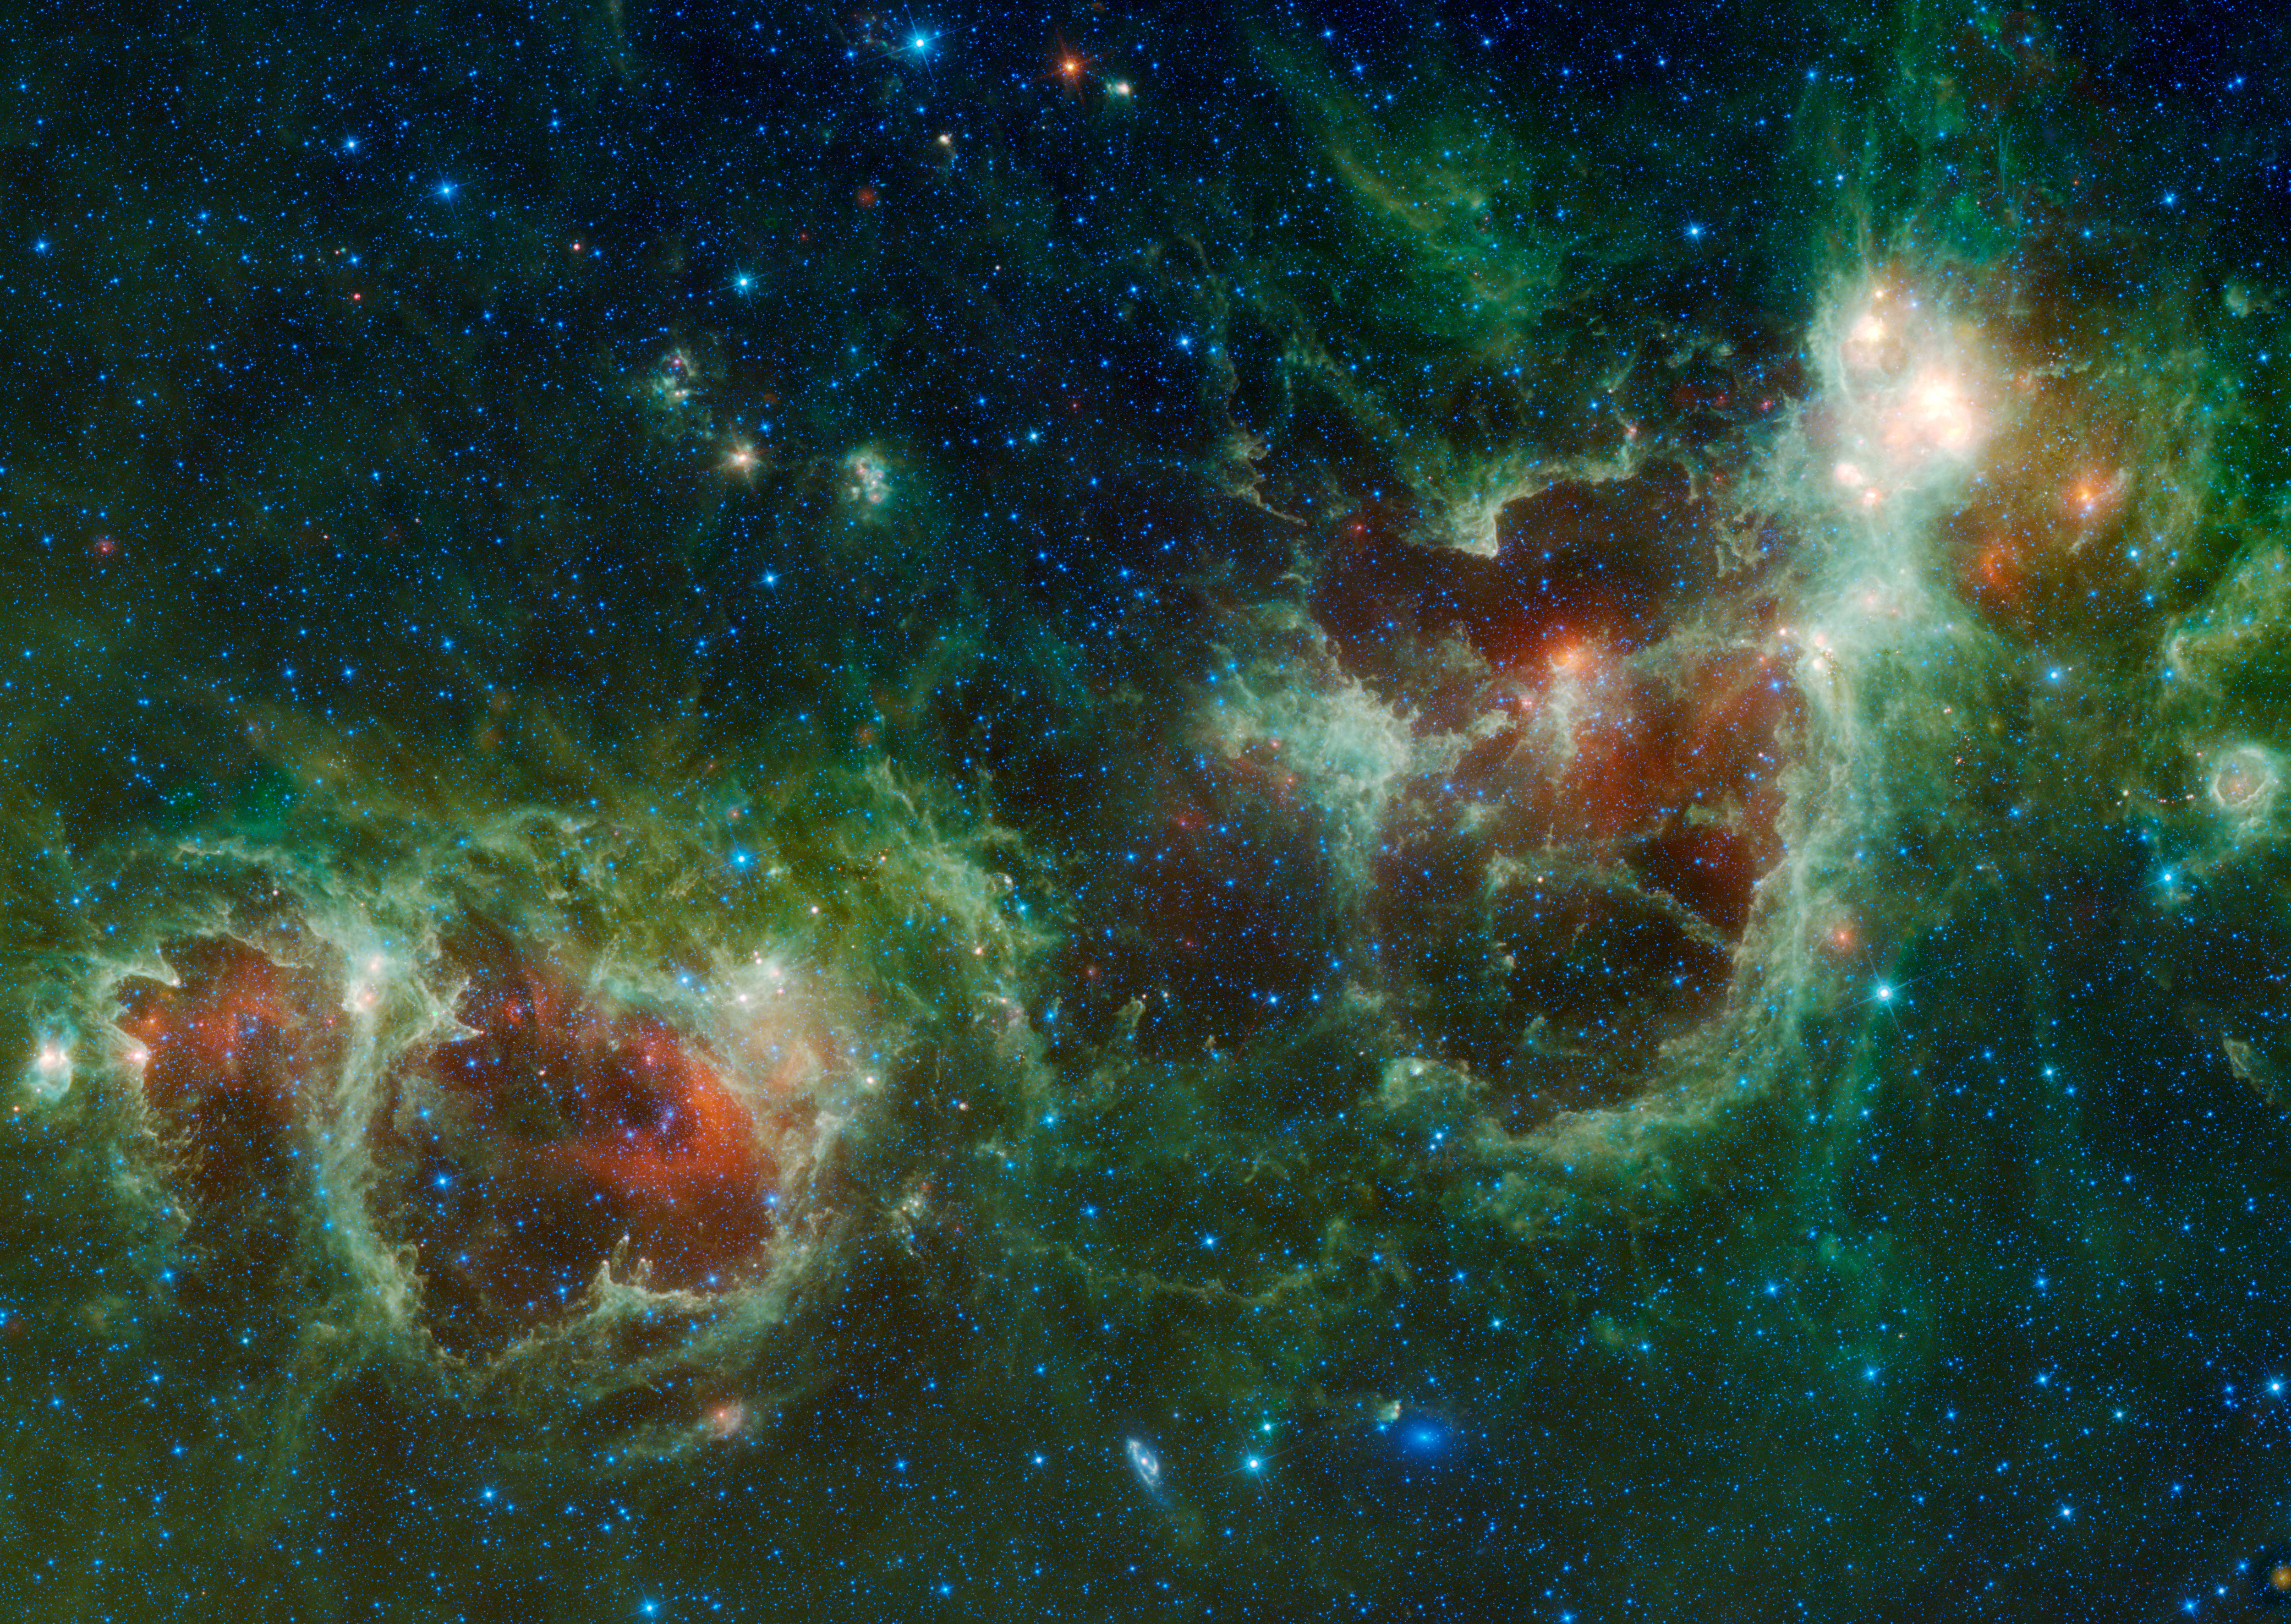 The Heart and Soul Nebulae in false colour. Credit: NASA Wise